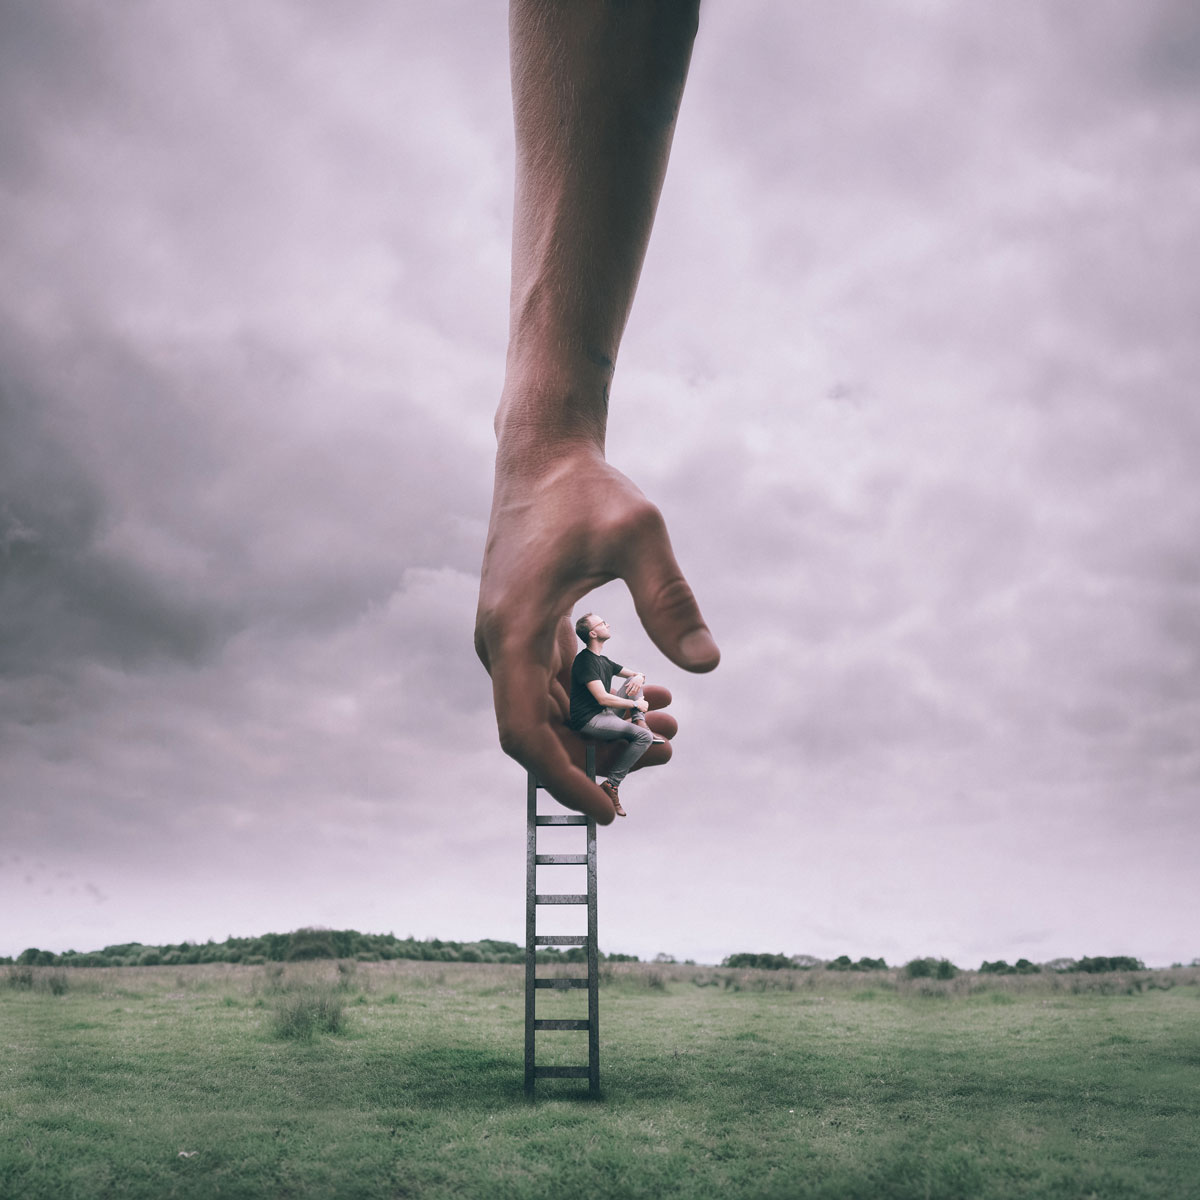 Joel-Robison-Reach-Out-For-A-Lift